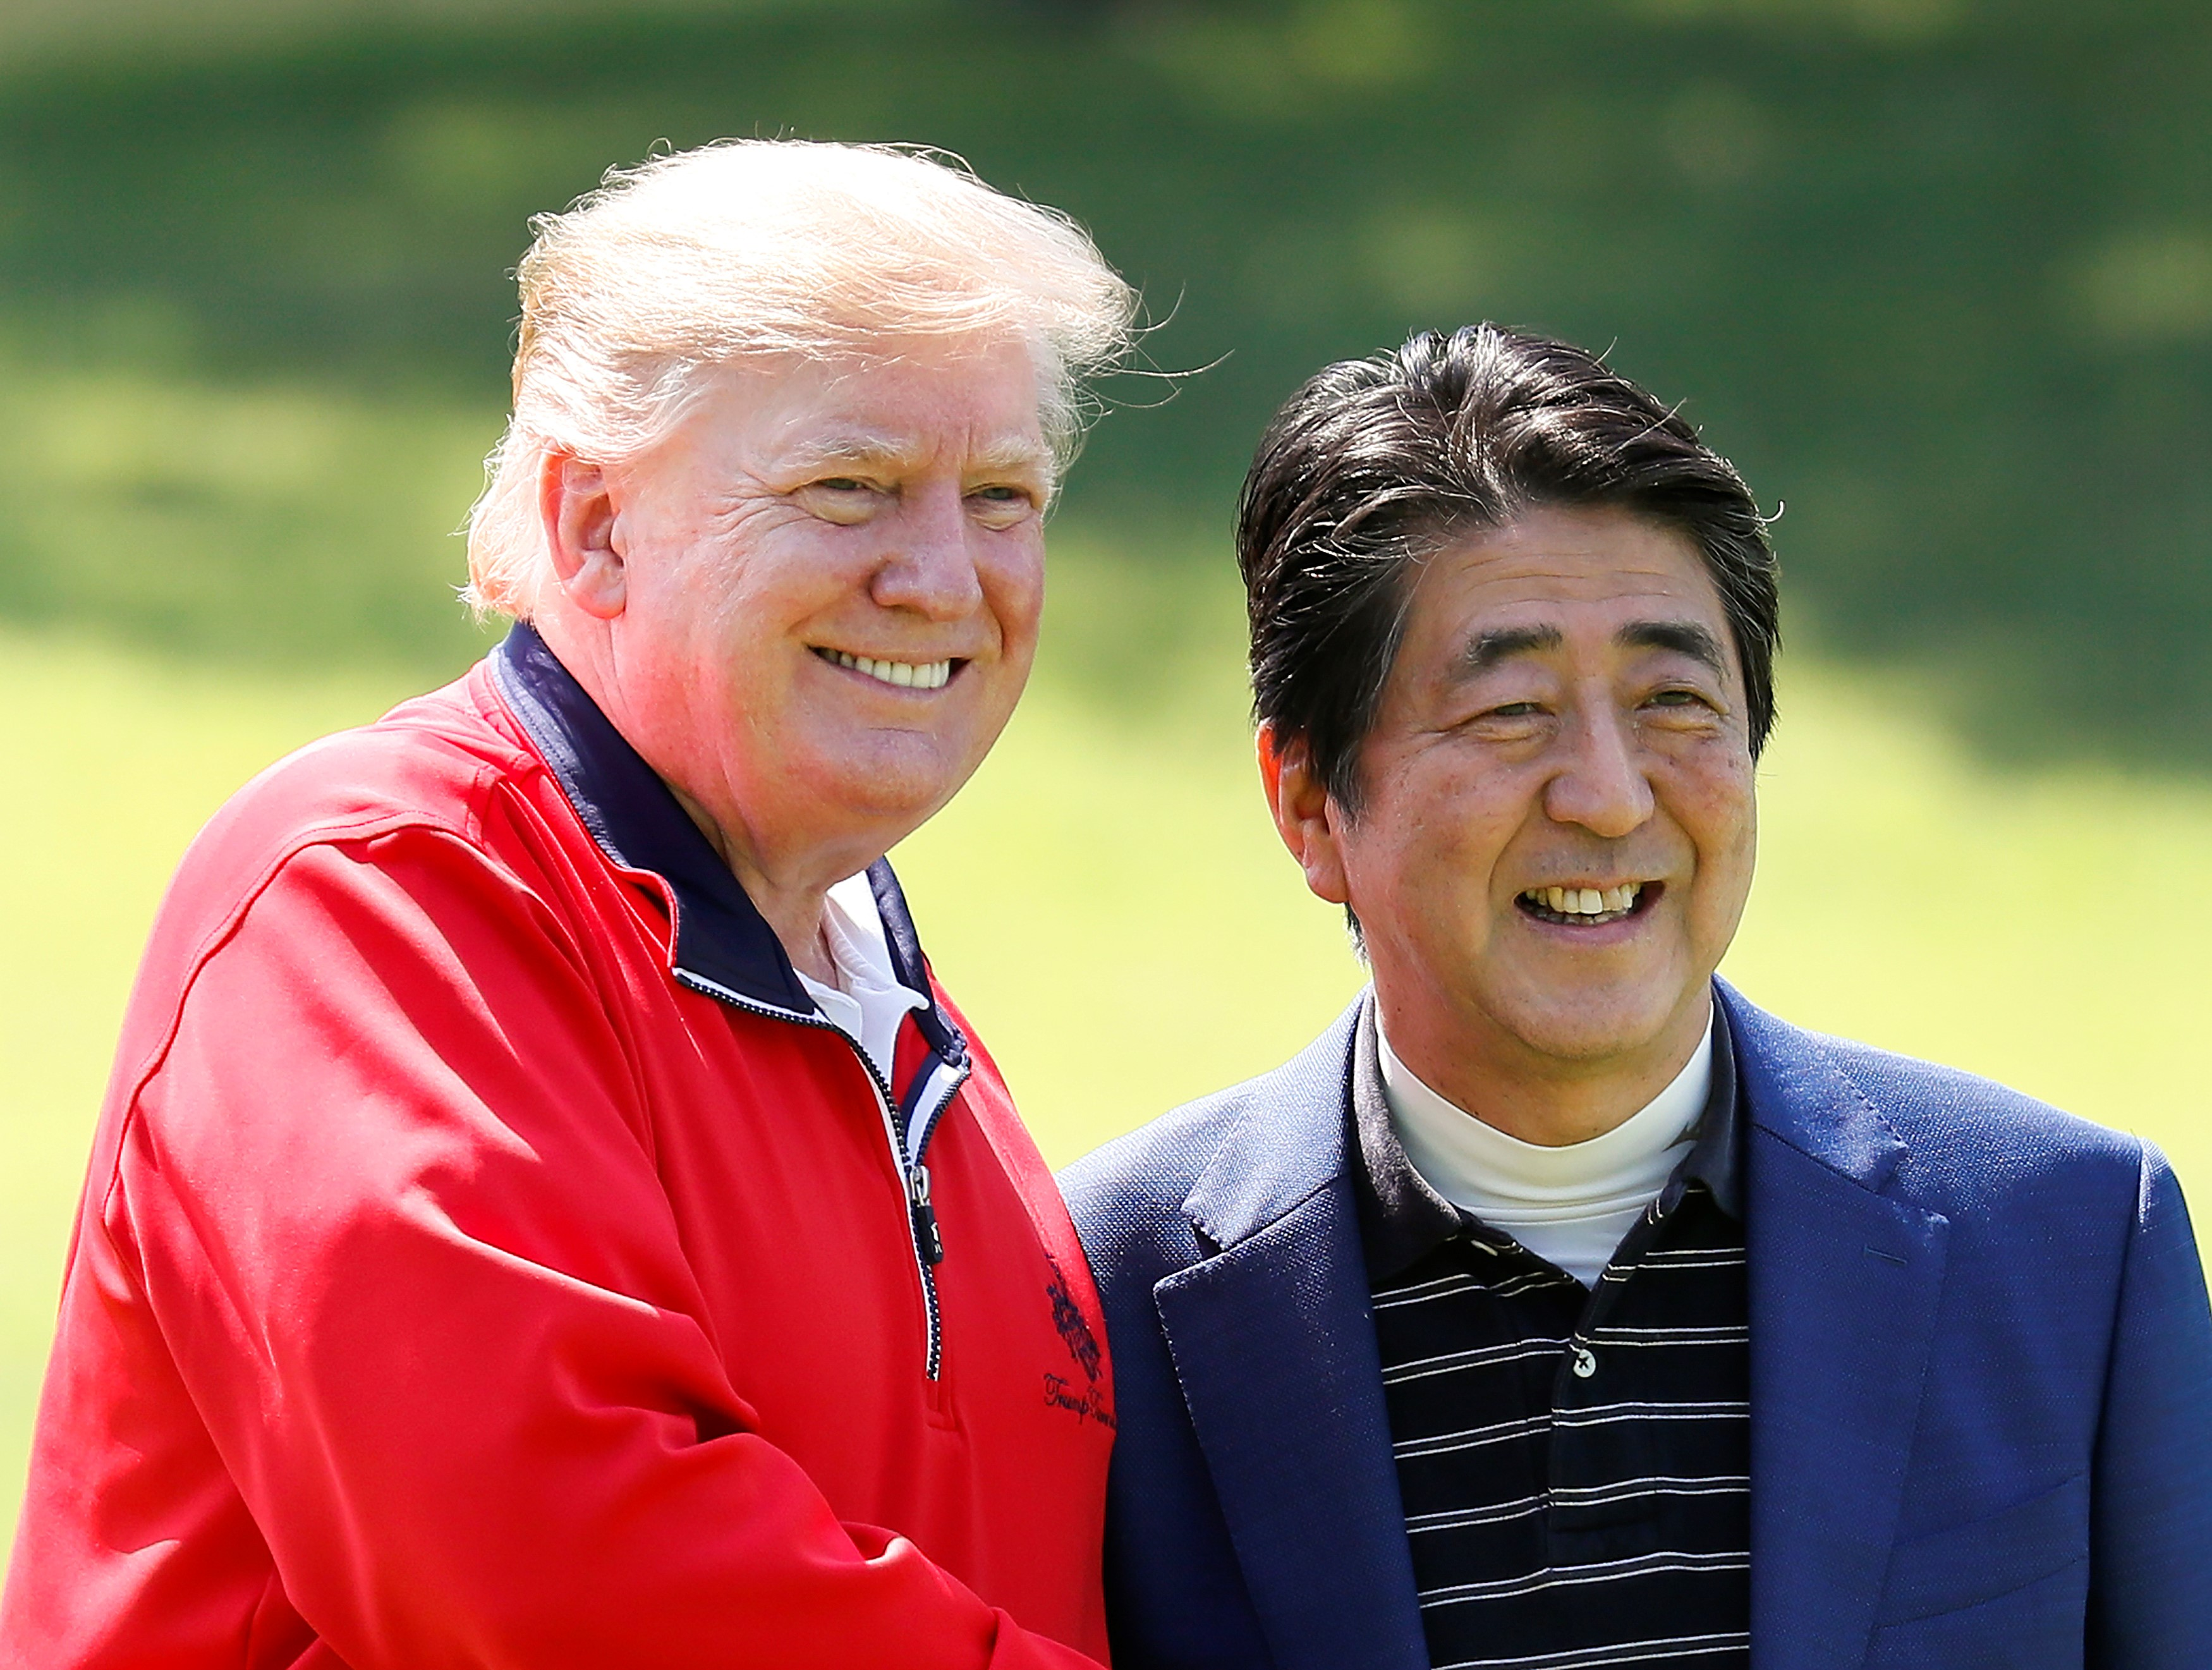 TOPSHOT - Japan's Prime Minister Shinzo Abe (R) and US President Donald Trump smile before playing a round of golf at Mobara Country Club in Chiba on May 26, 2019. (Photo by KIMIMASA MAYAMA/AFP/Getty Images)